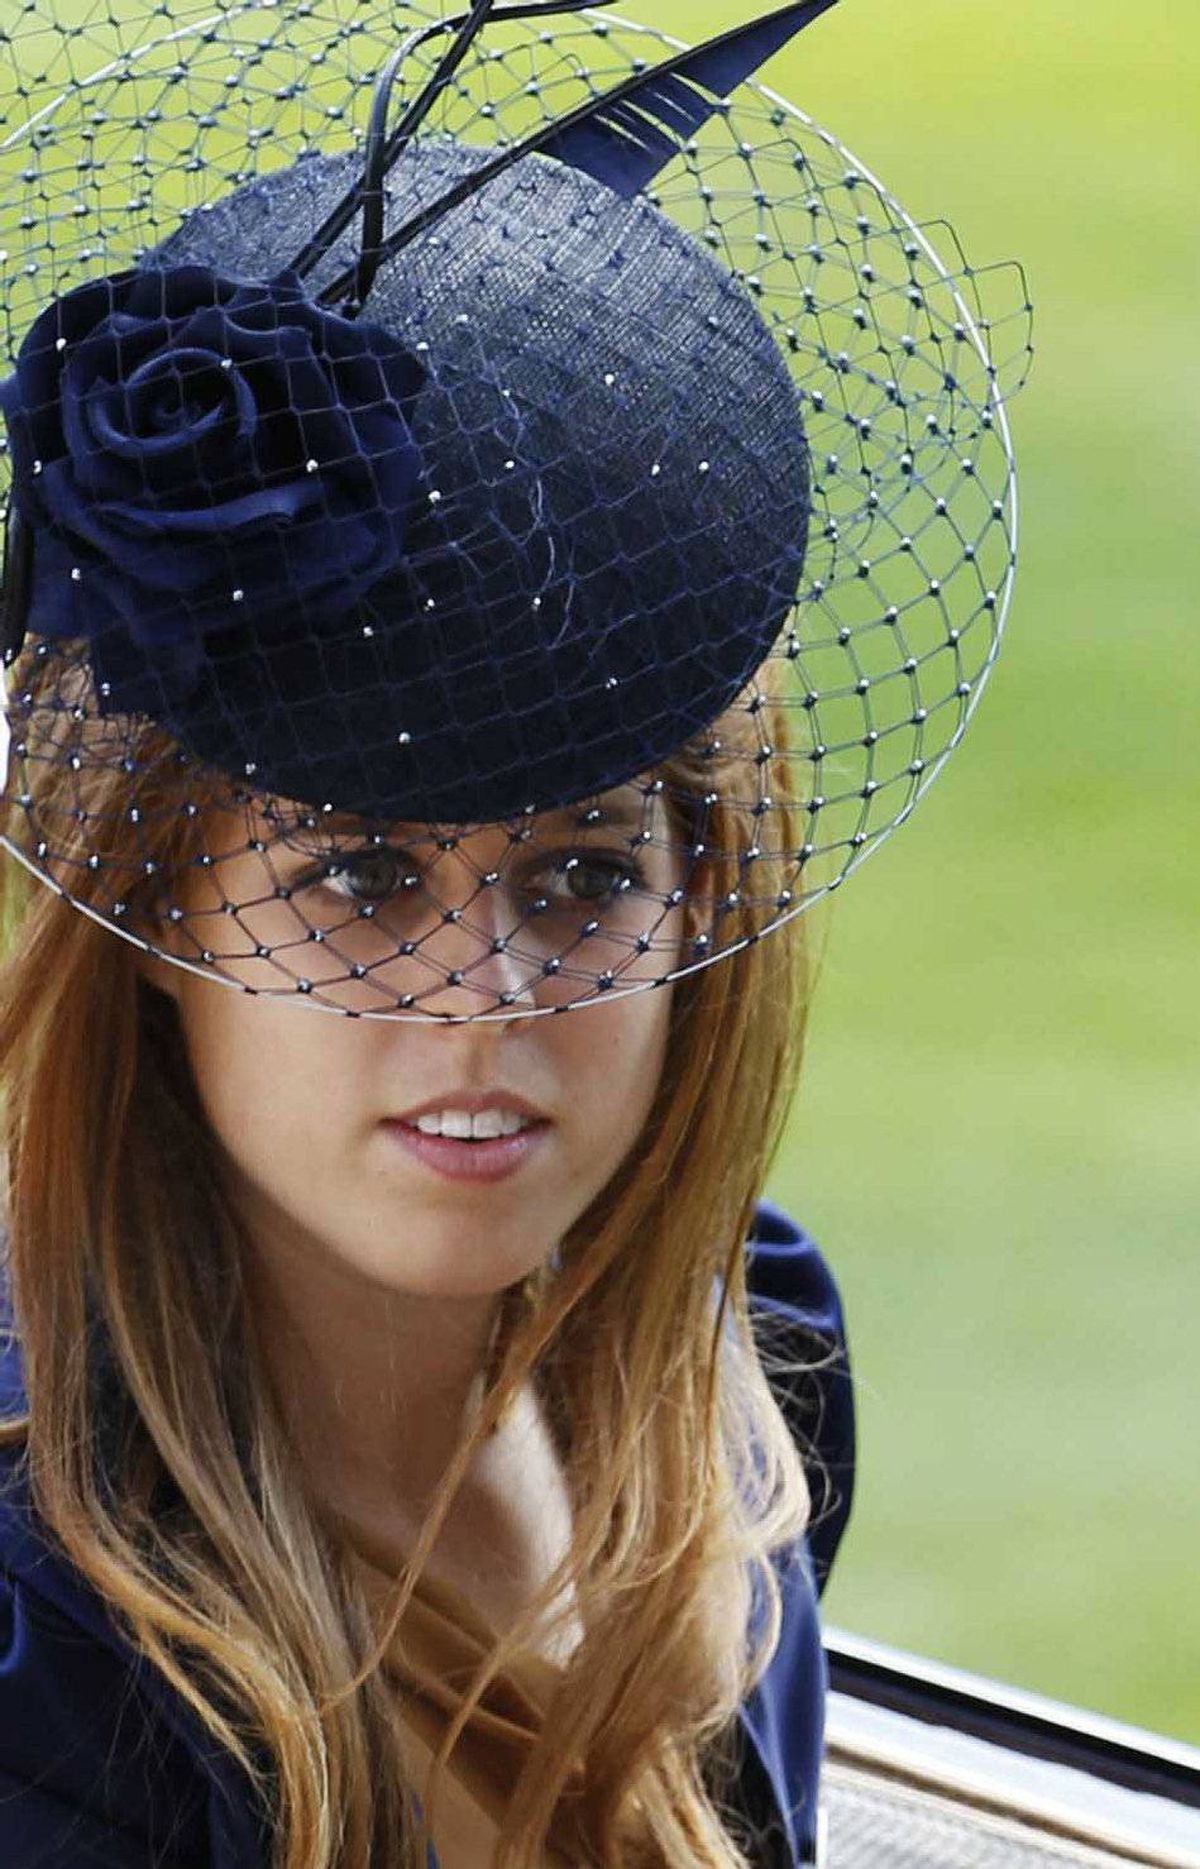 Princess Beatrice arrives on the Ladies Day, the third day of horse racing at Royal Ascot in southern England June 17, 2010.